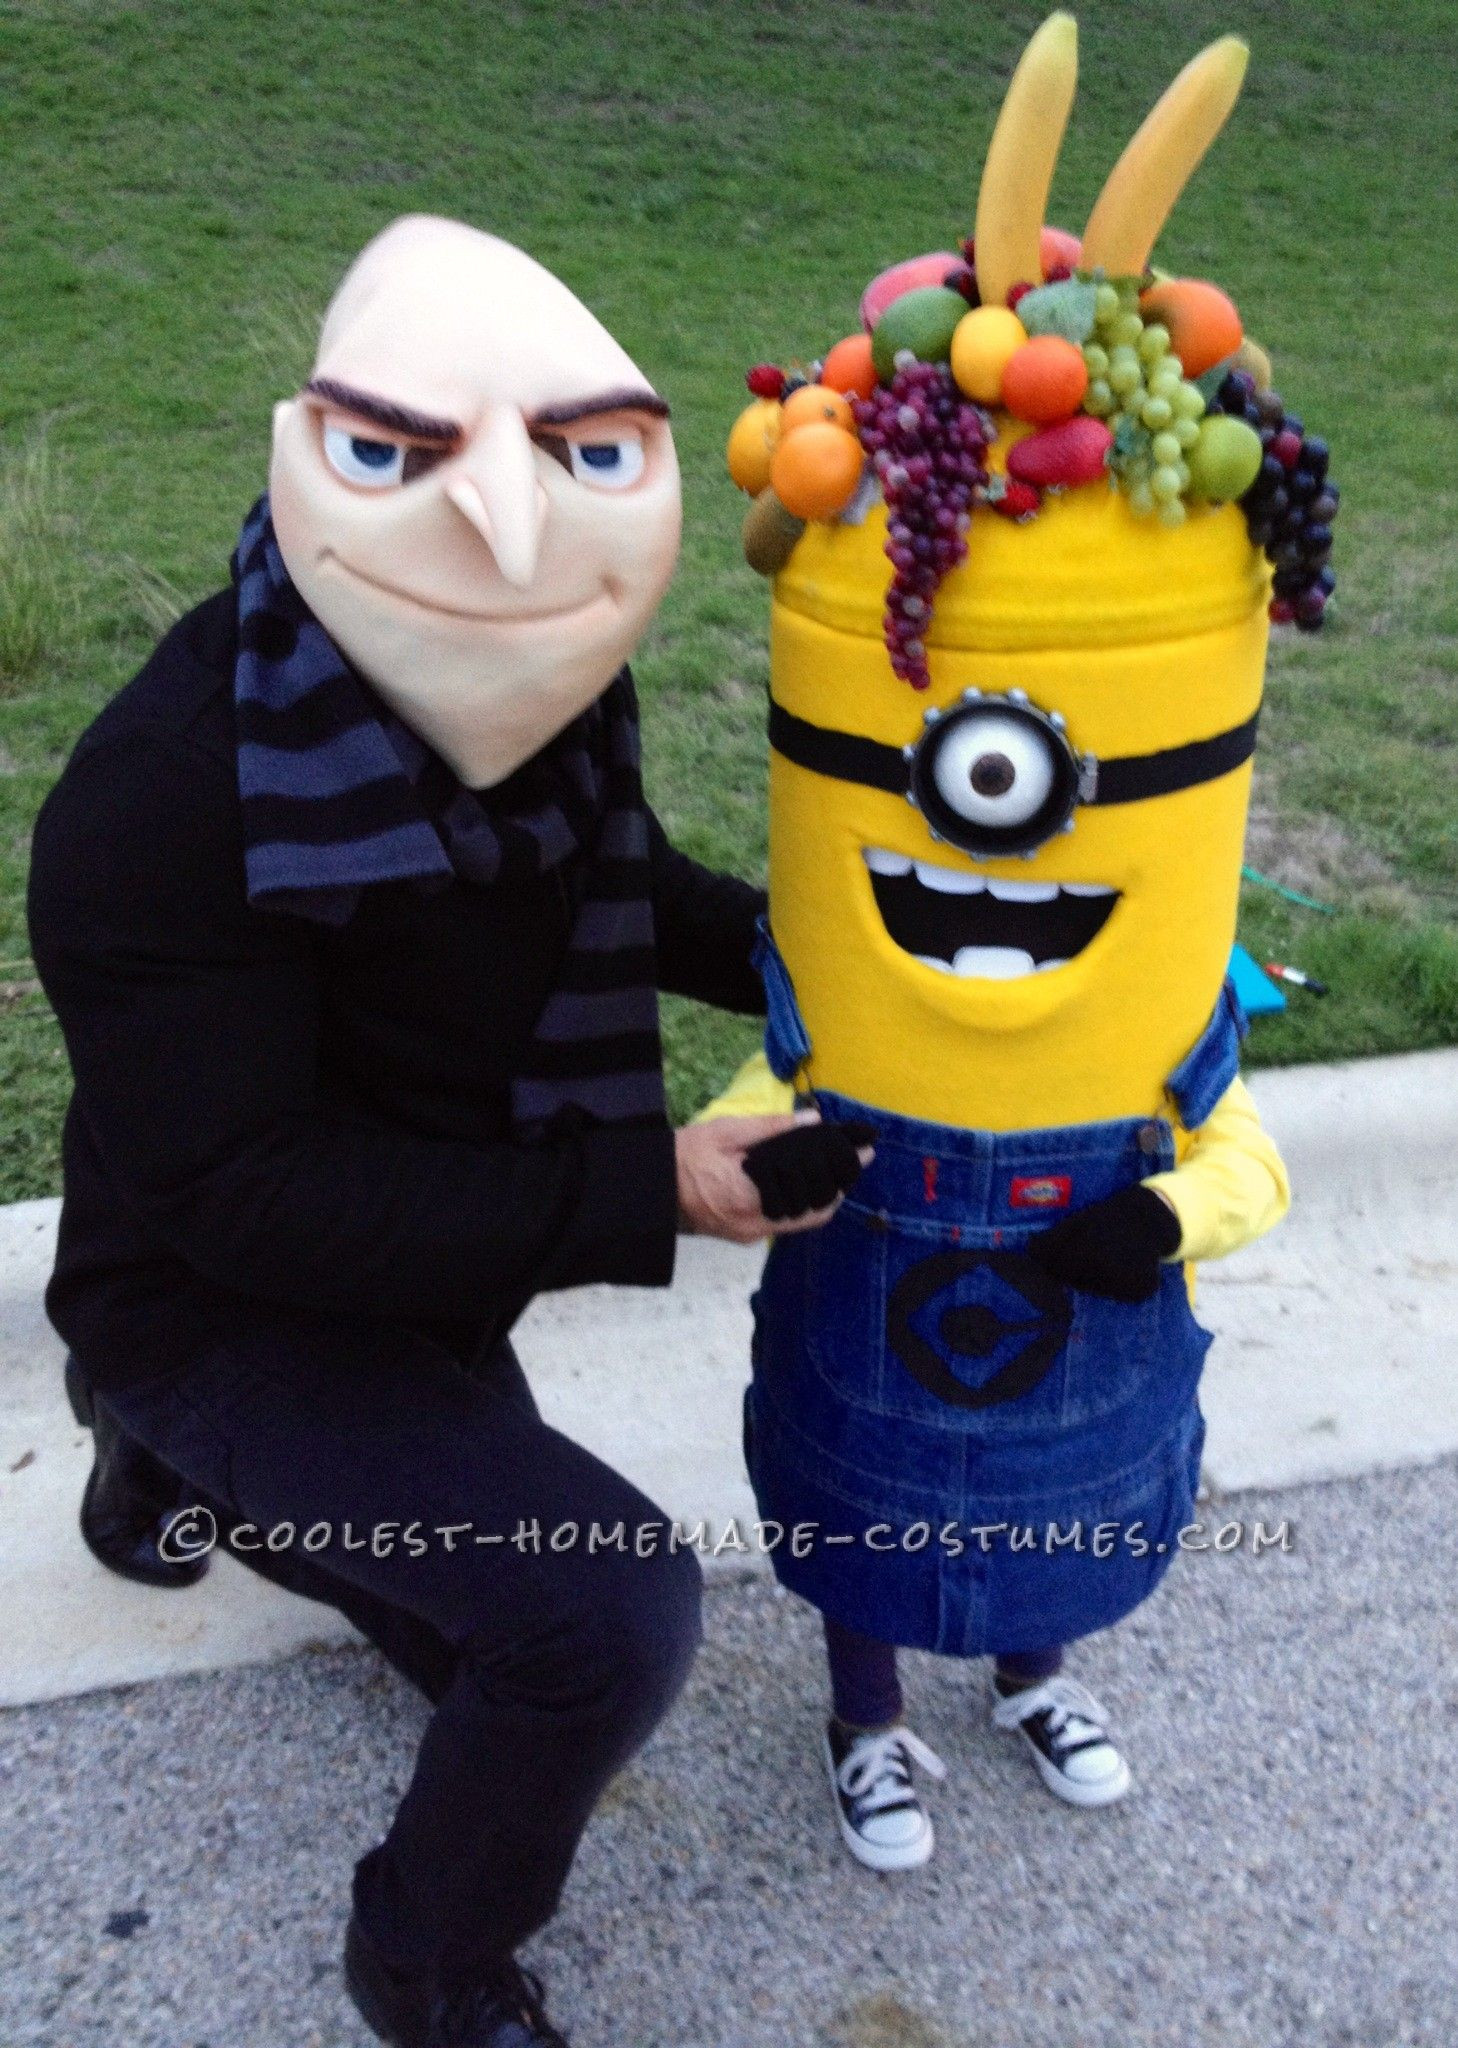 DIY Toddler Minion Costume  Coolest Carl the Minion Costume for a Toddler